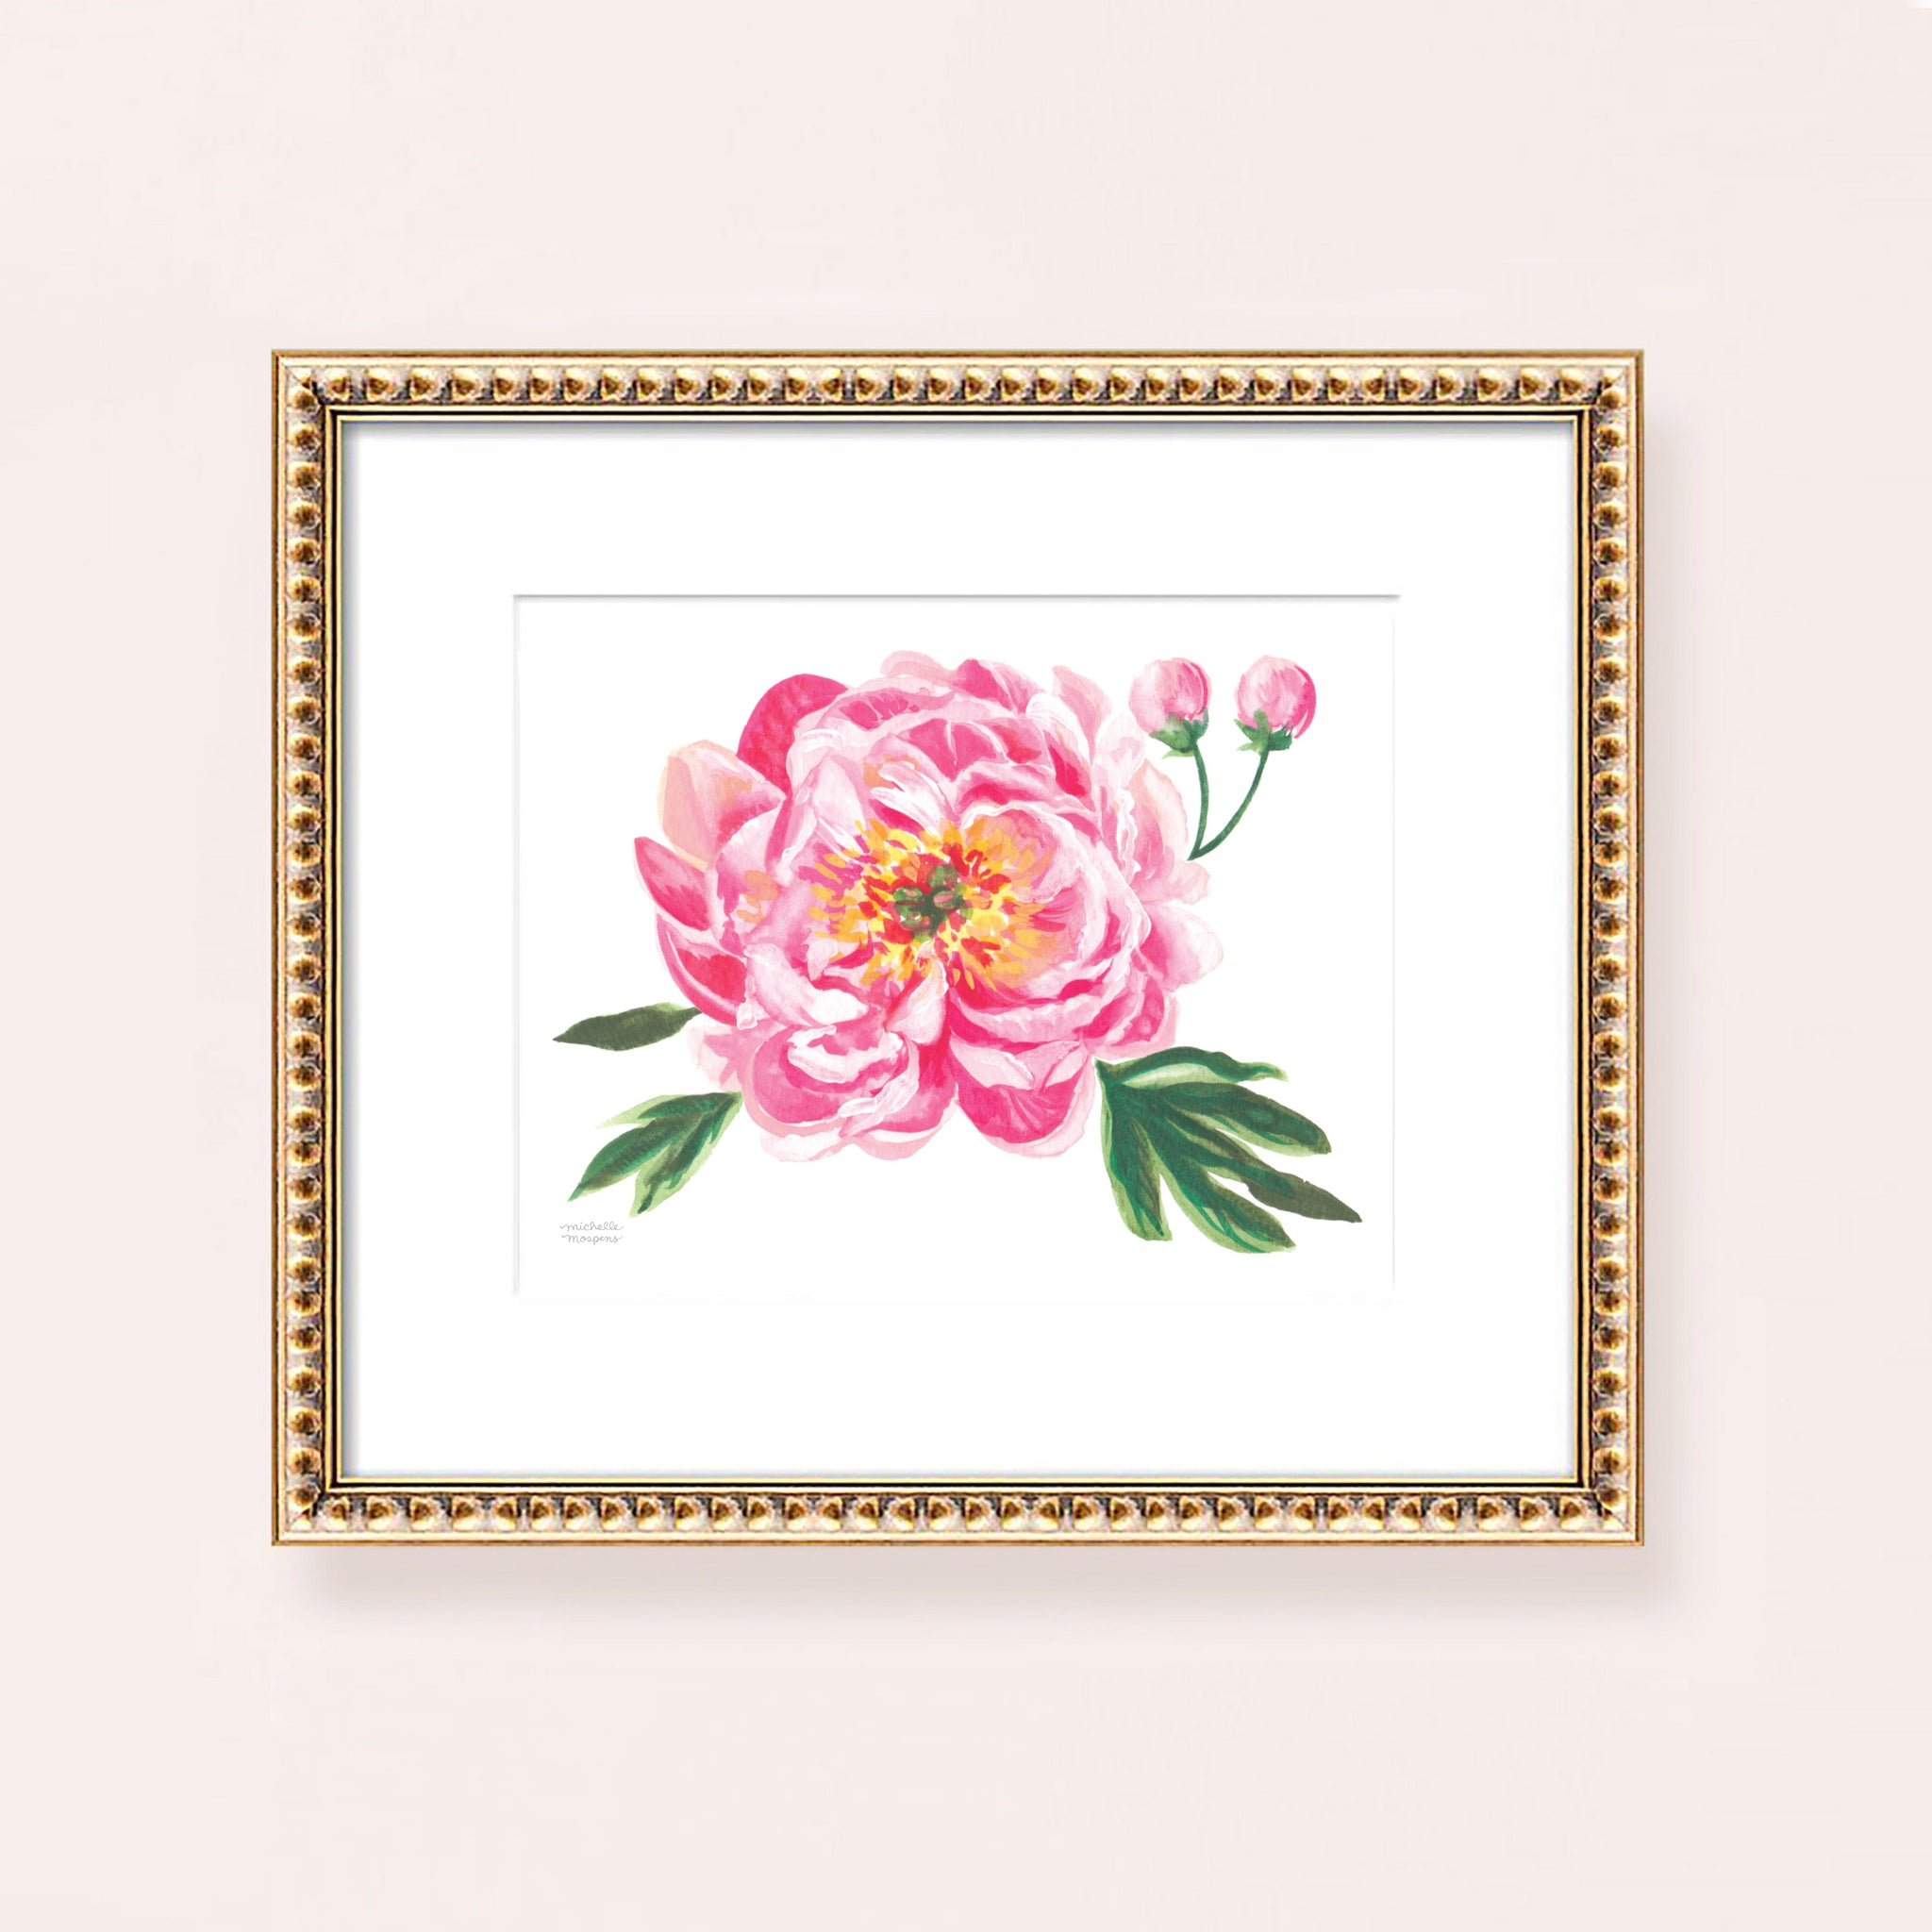 Watercolor pink peony bloom flower wall art print.